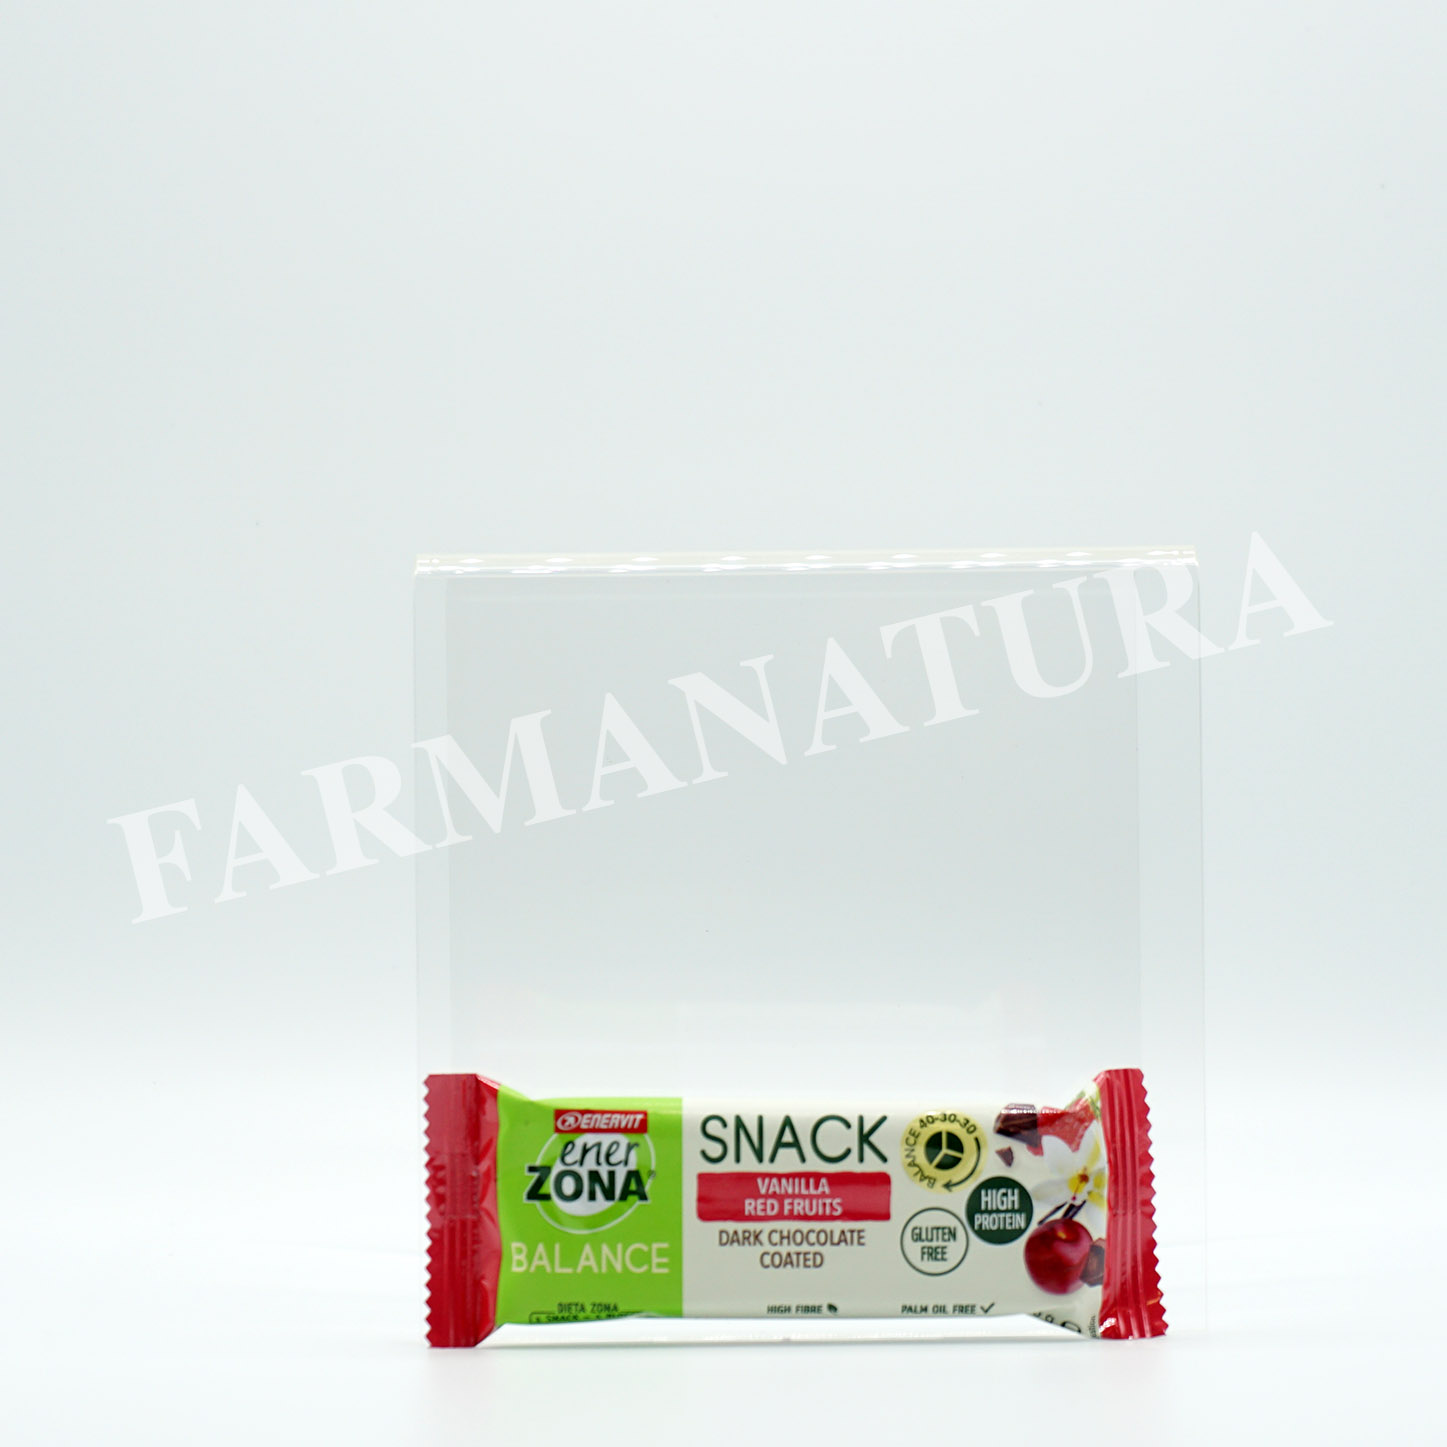 Enerzona Balance Snack 40-30-30 Vanilla Red Fruit